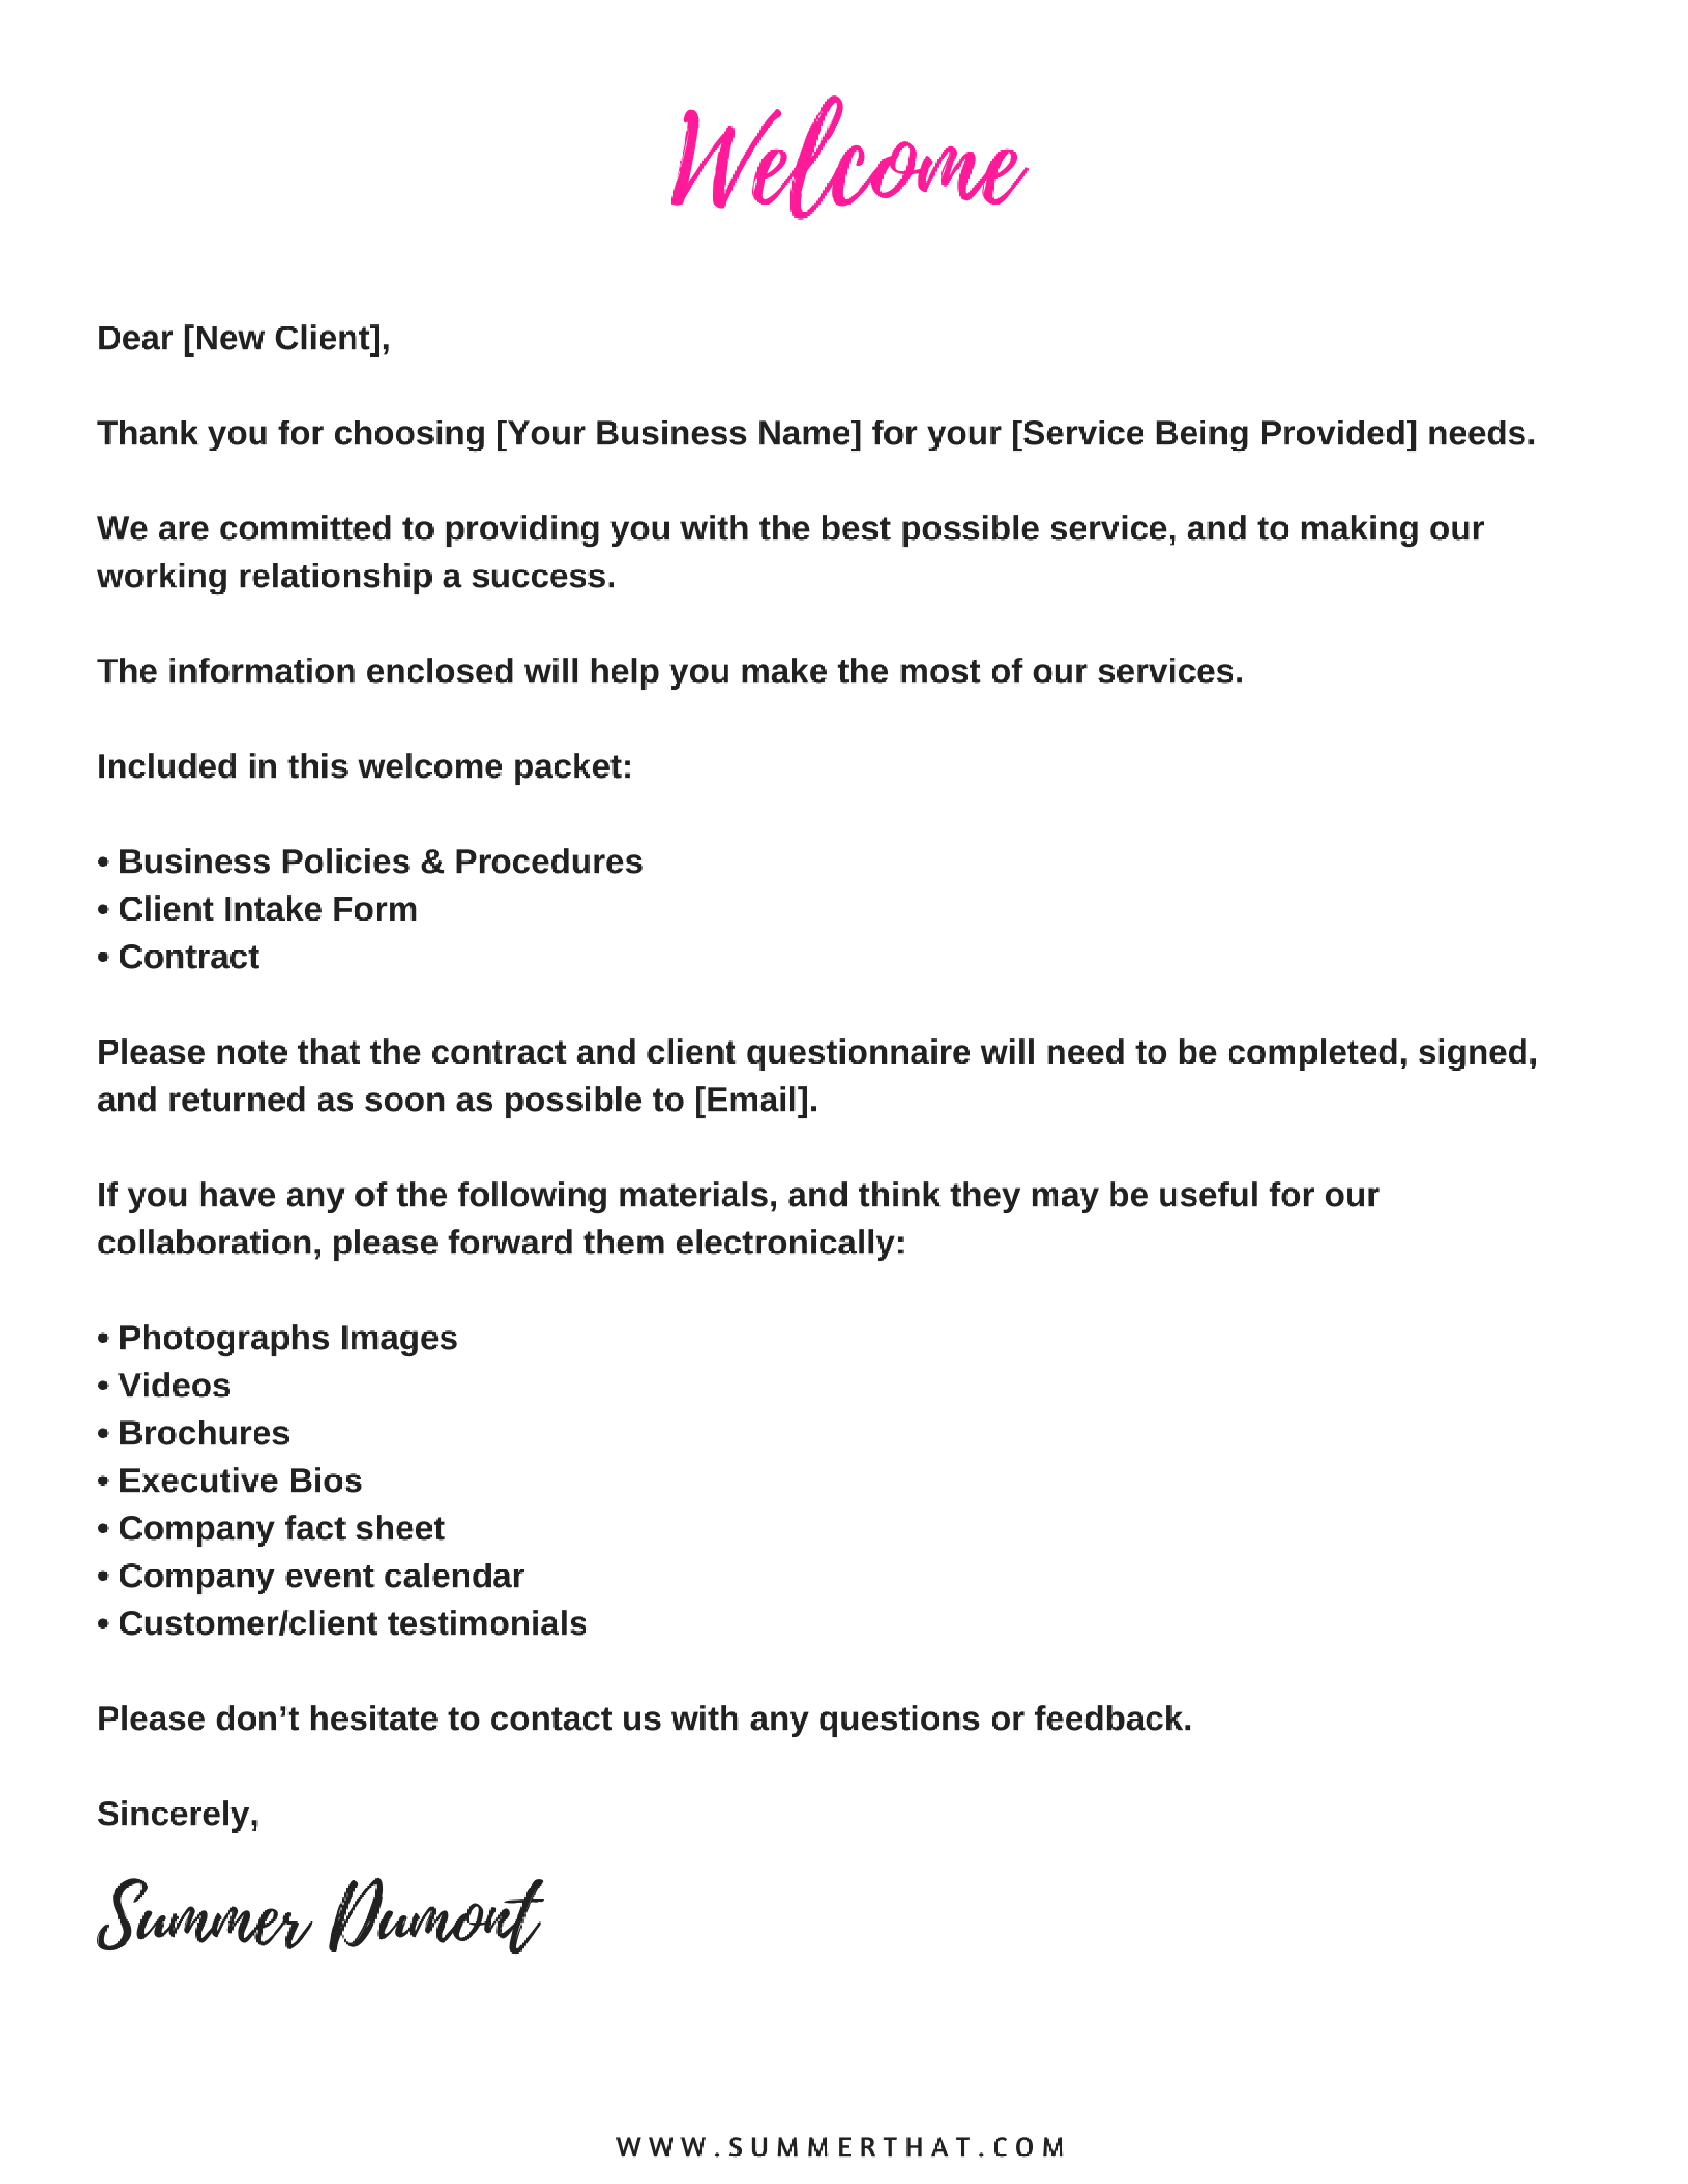 Welcome Letter To Client